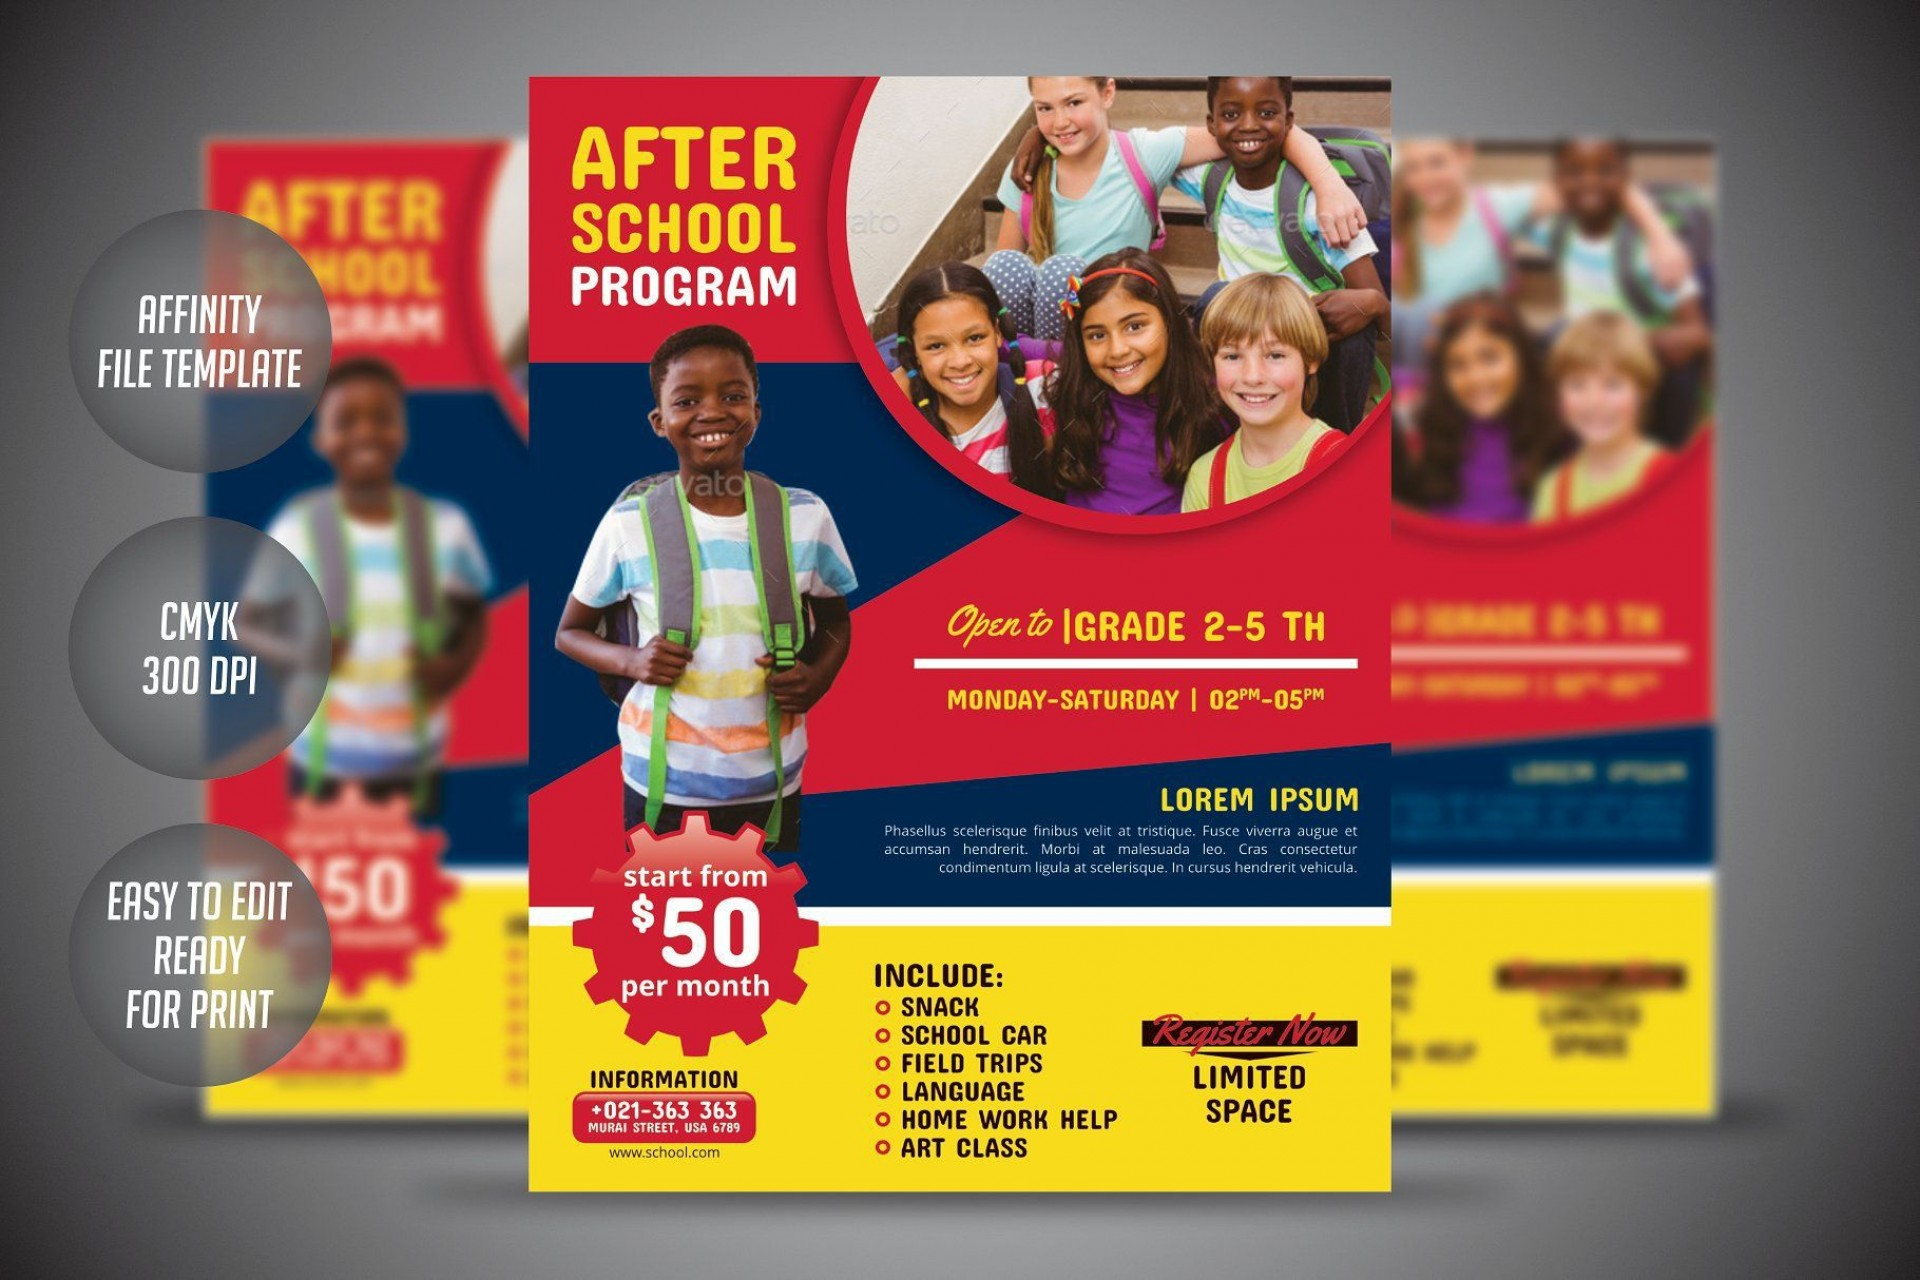 004 Fascinating Free After School Flyer Template Example  Templates1920